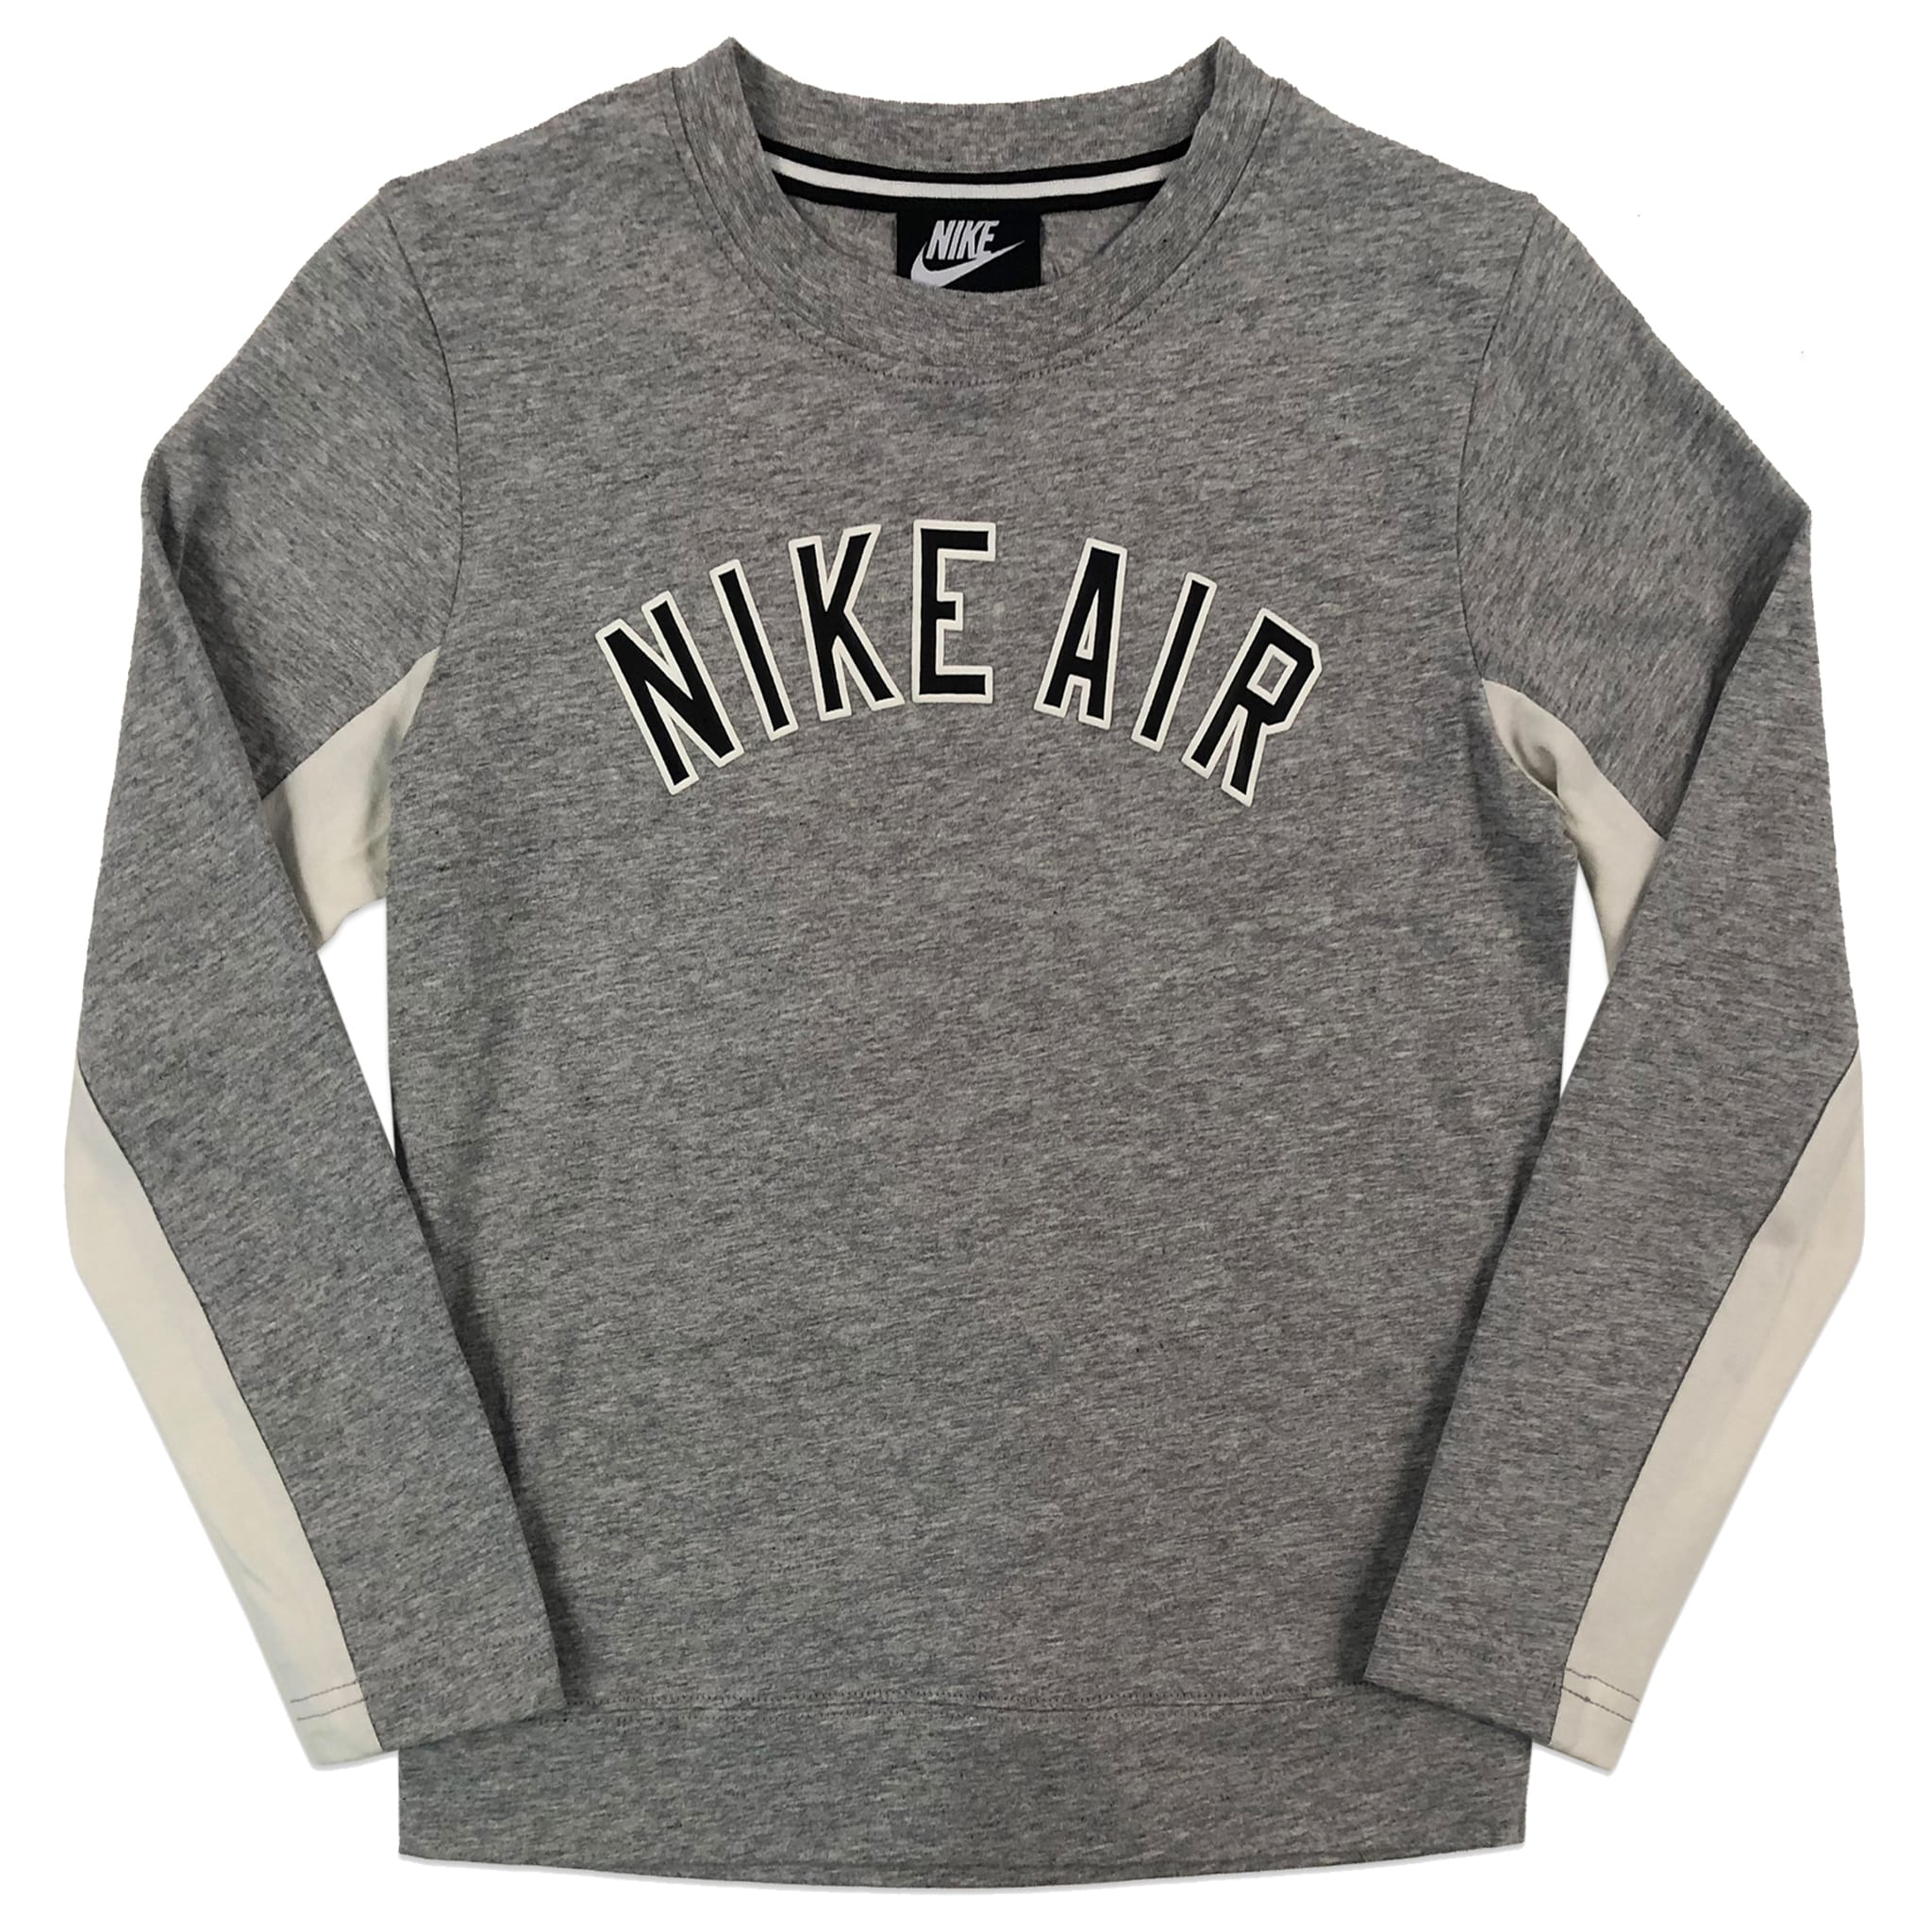 Nike Nike Air Long Sleeve T shirt 4 7y Clement